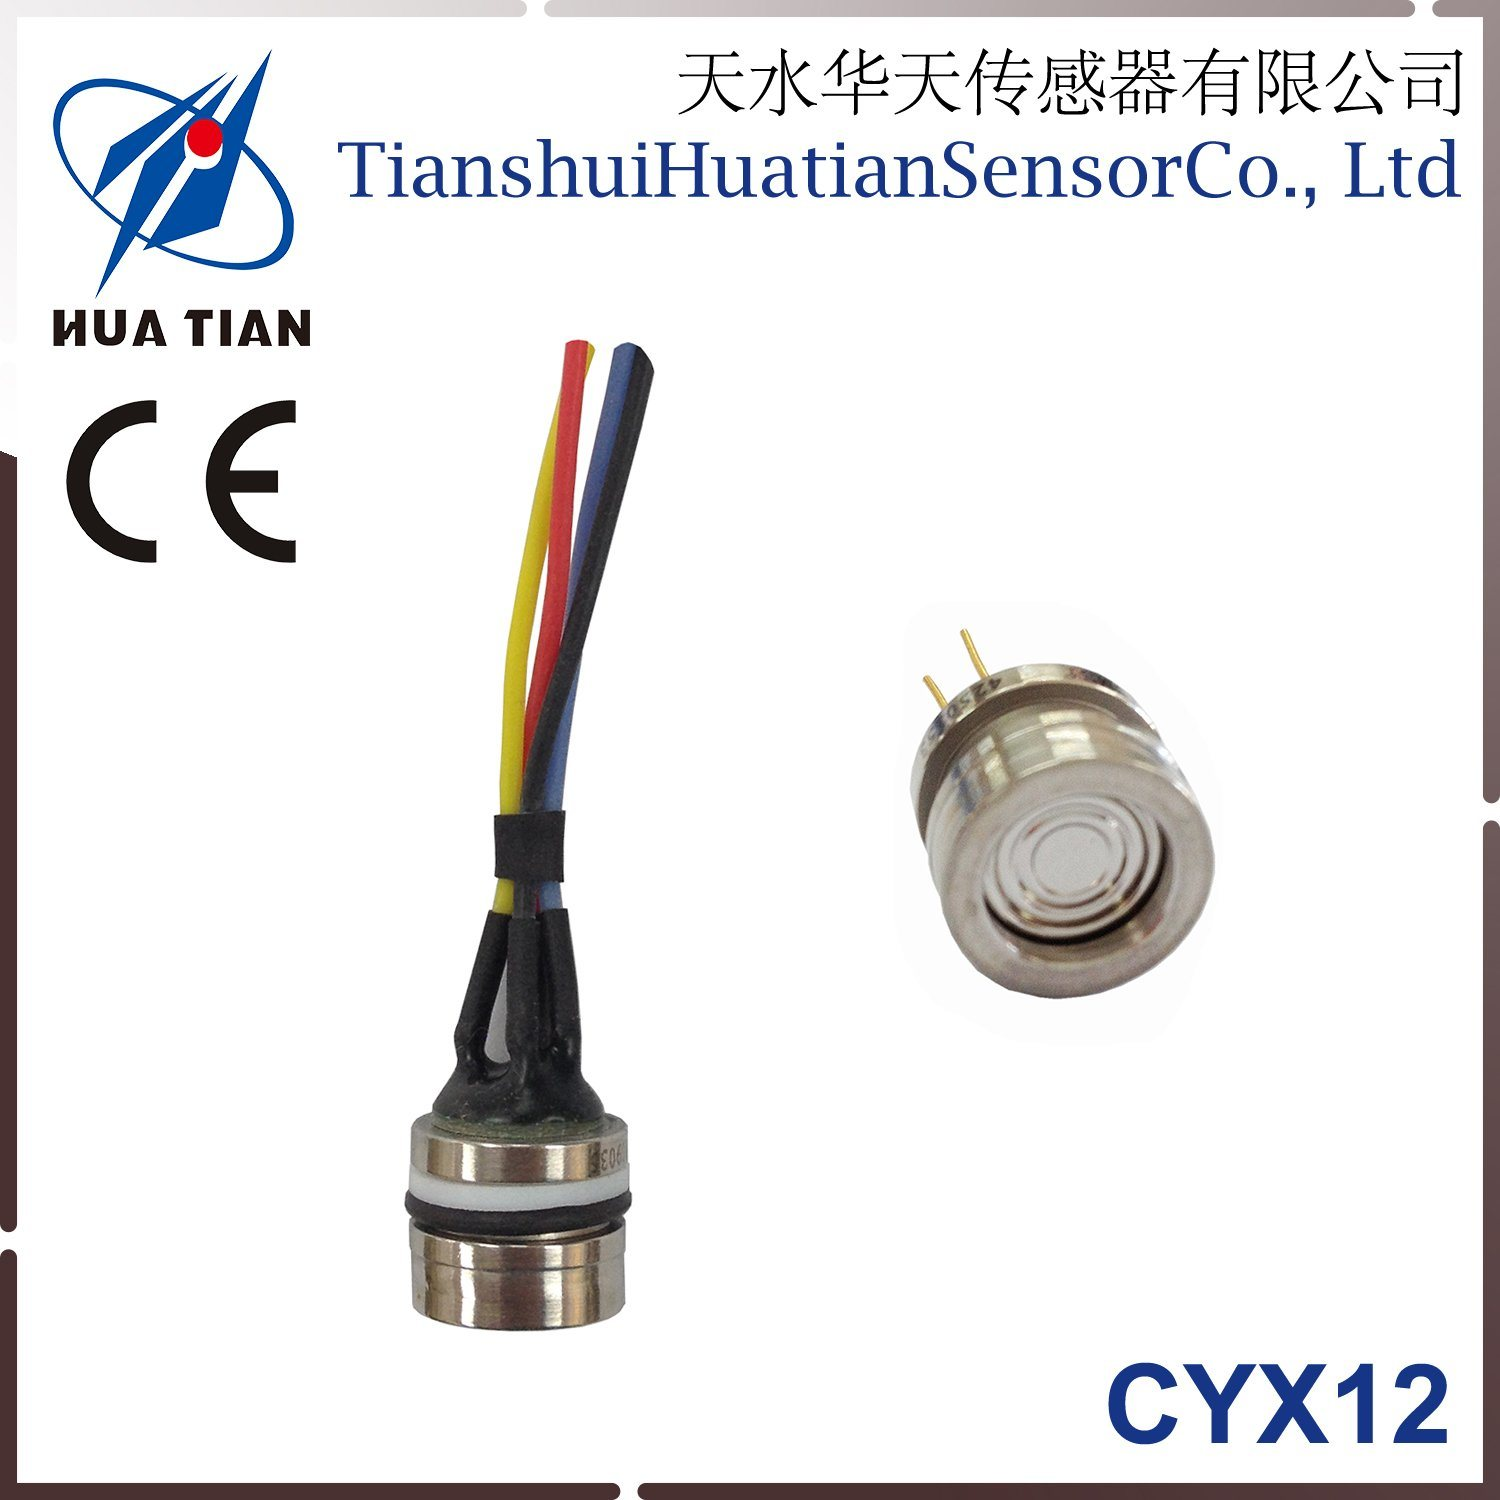 Cyx-12 12.6mm Silicon Oil Filled Piezoresistive Pressure Sensor